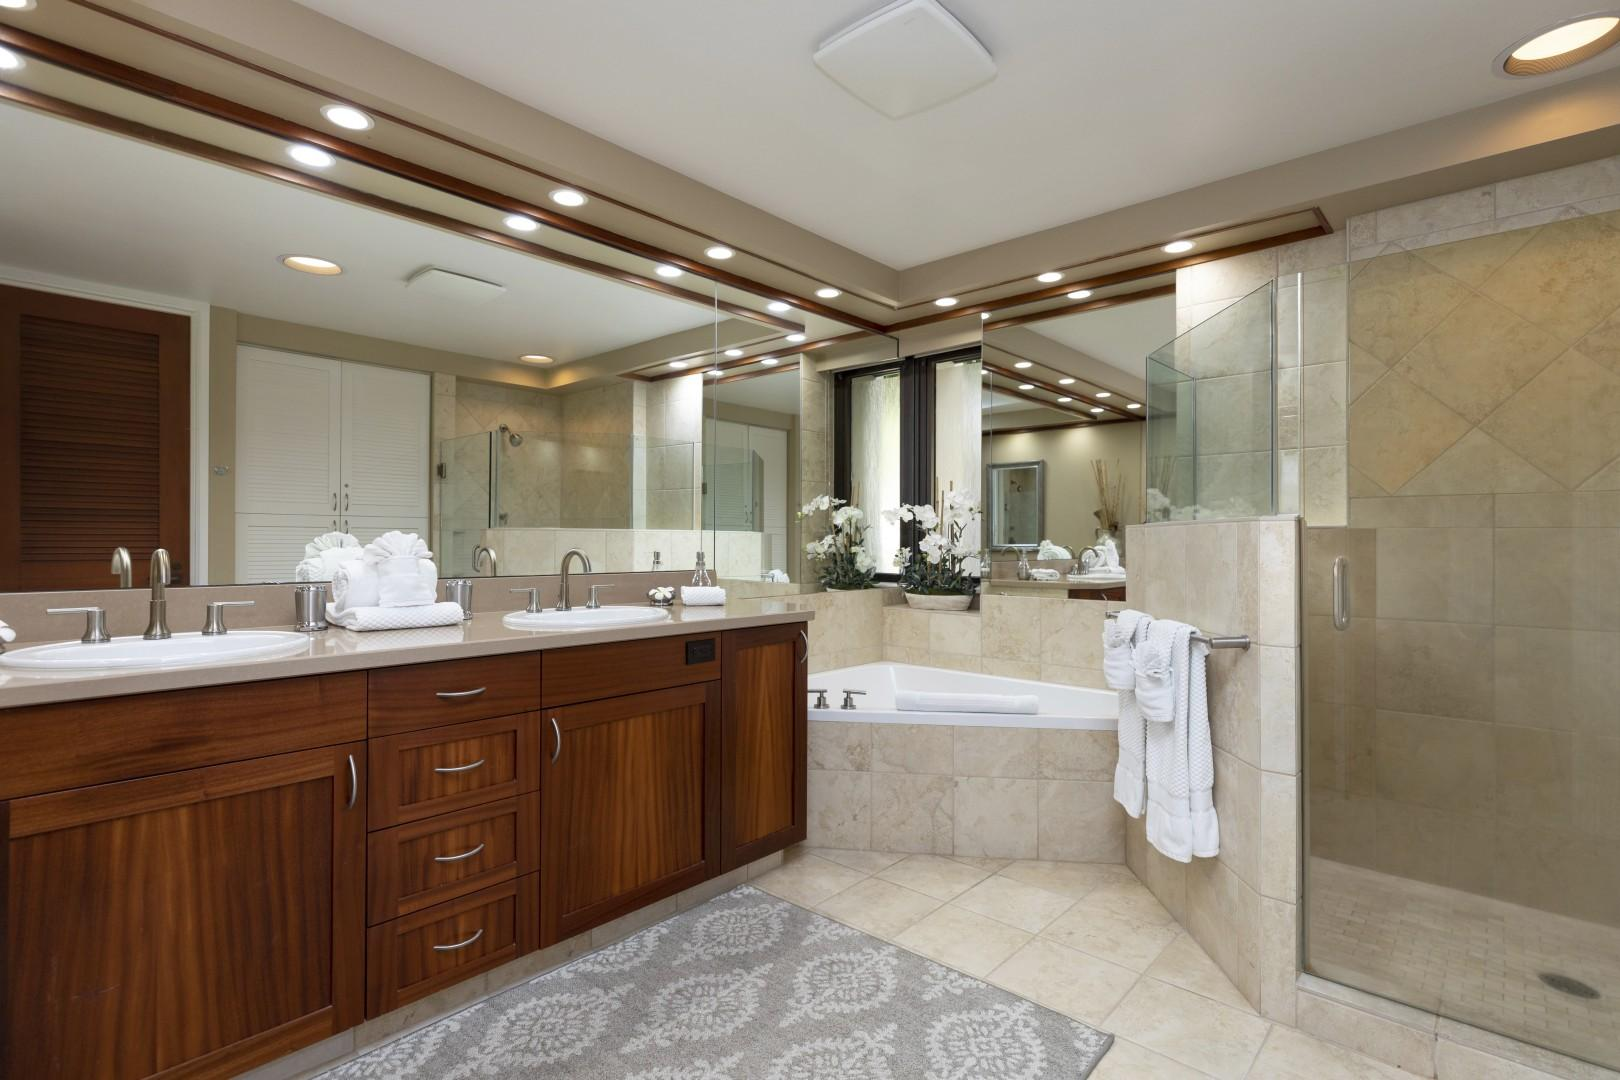 There is also a large soaking tub to enjoy.